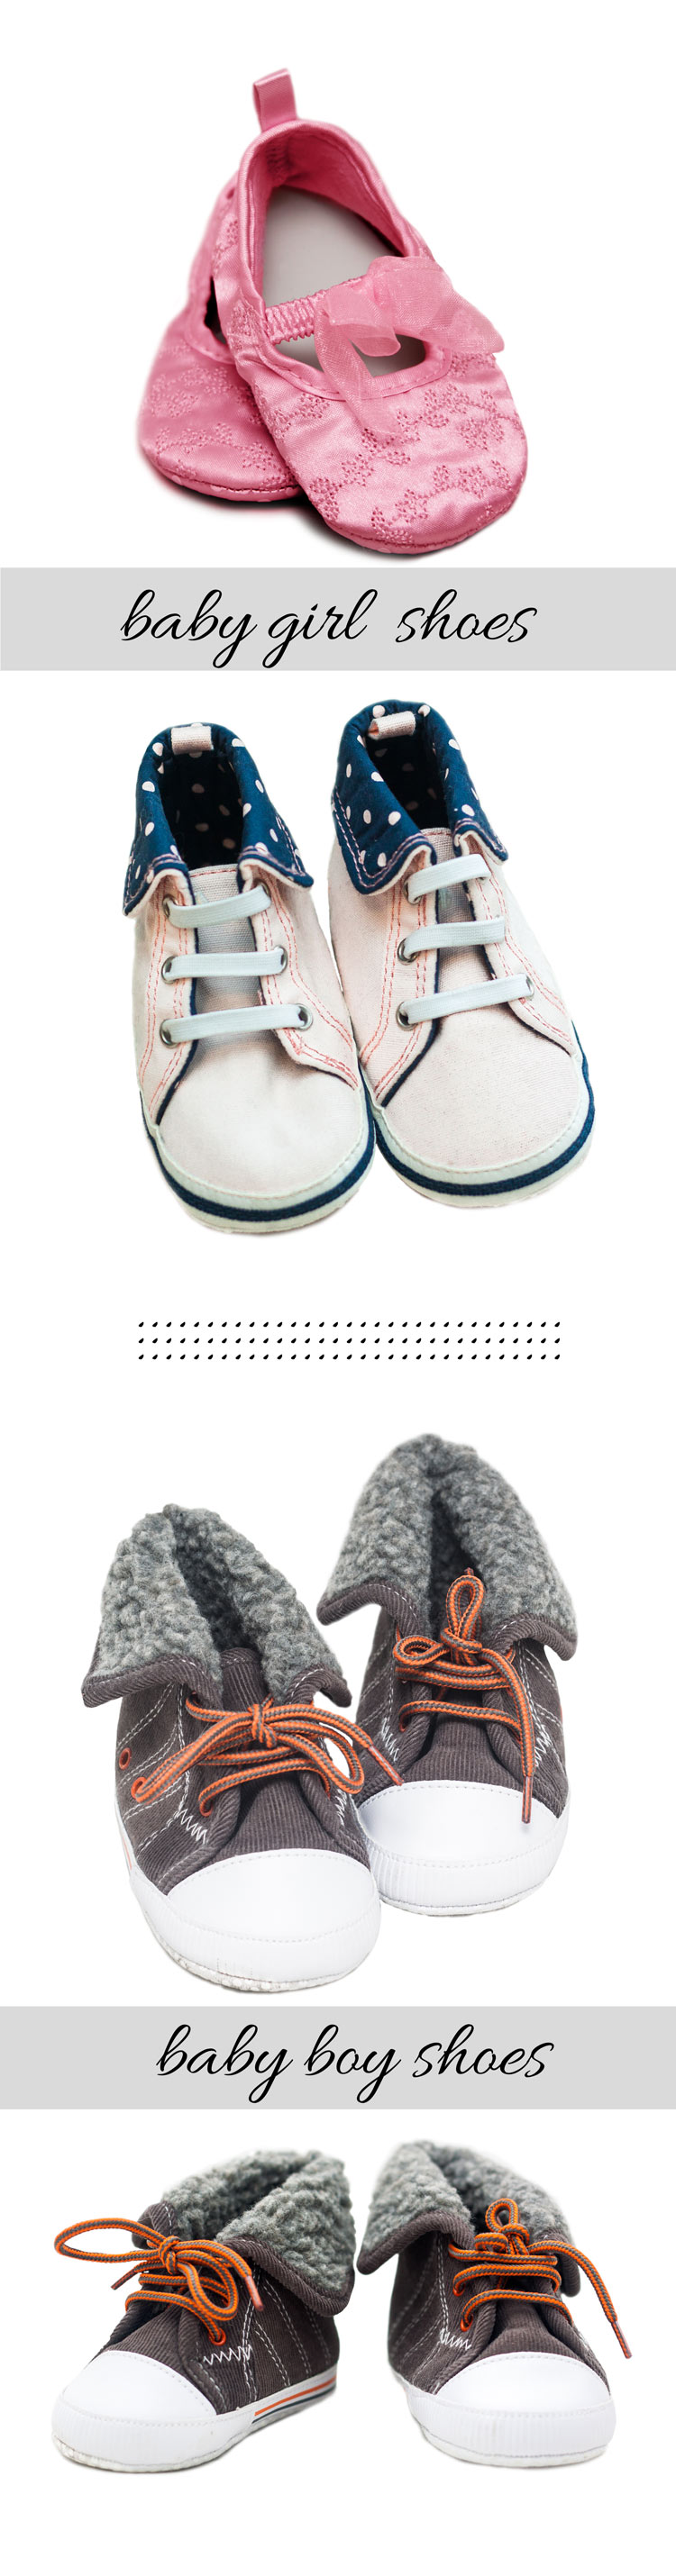 Baby Shoes Transparent Png Baby Shoes Cute Baby Shoes Free Baby Stuff